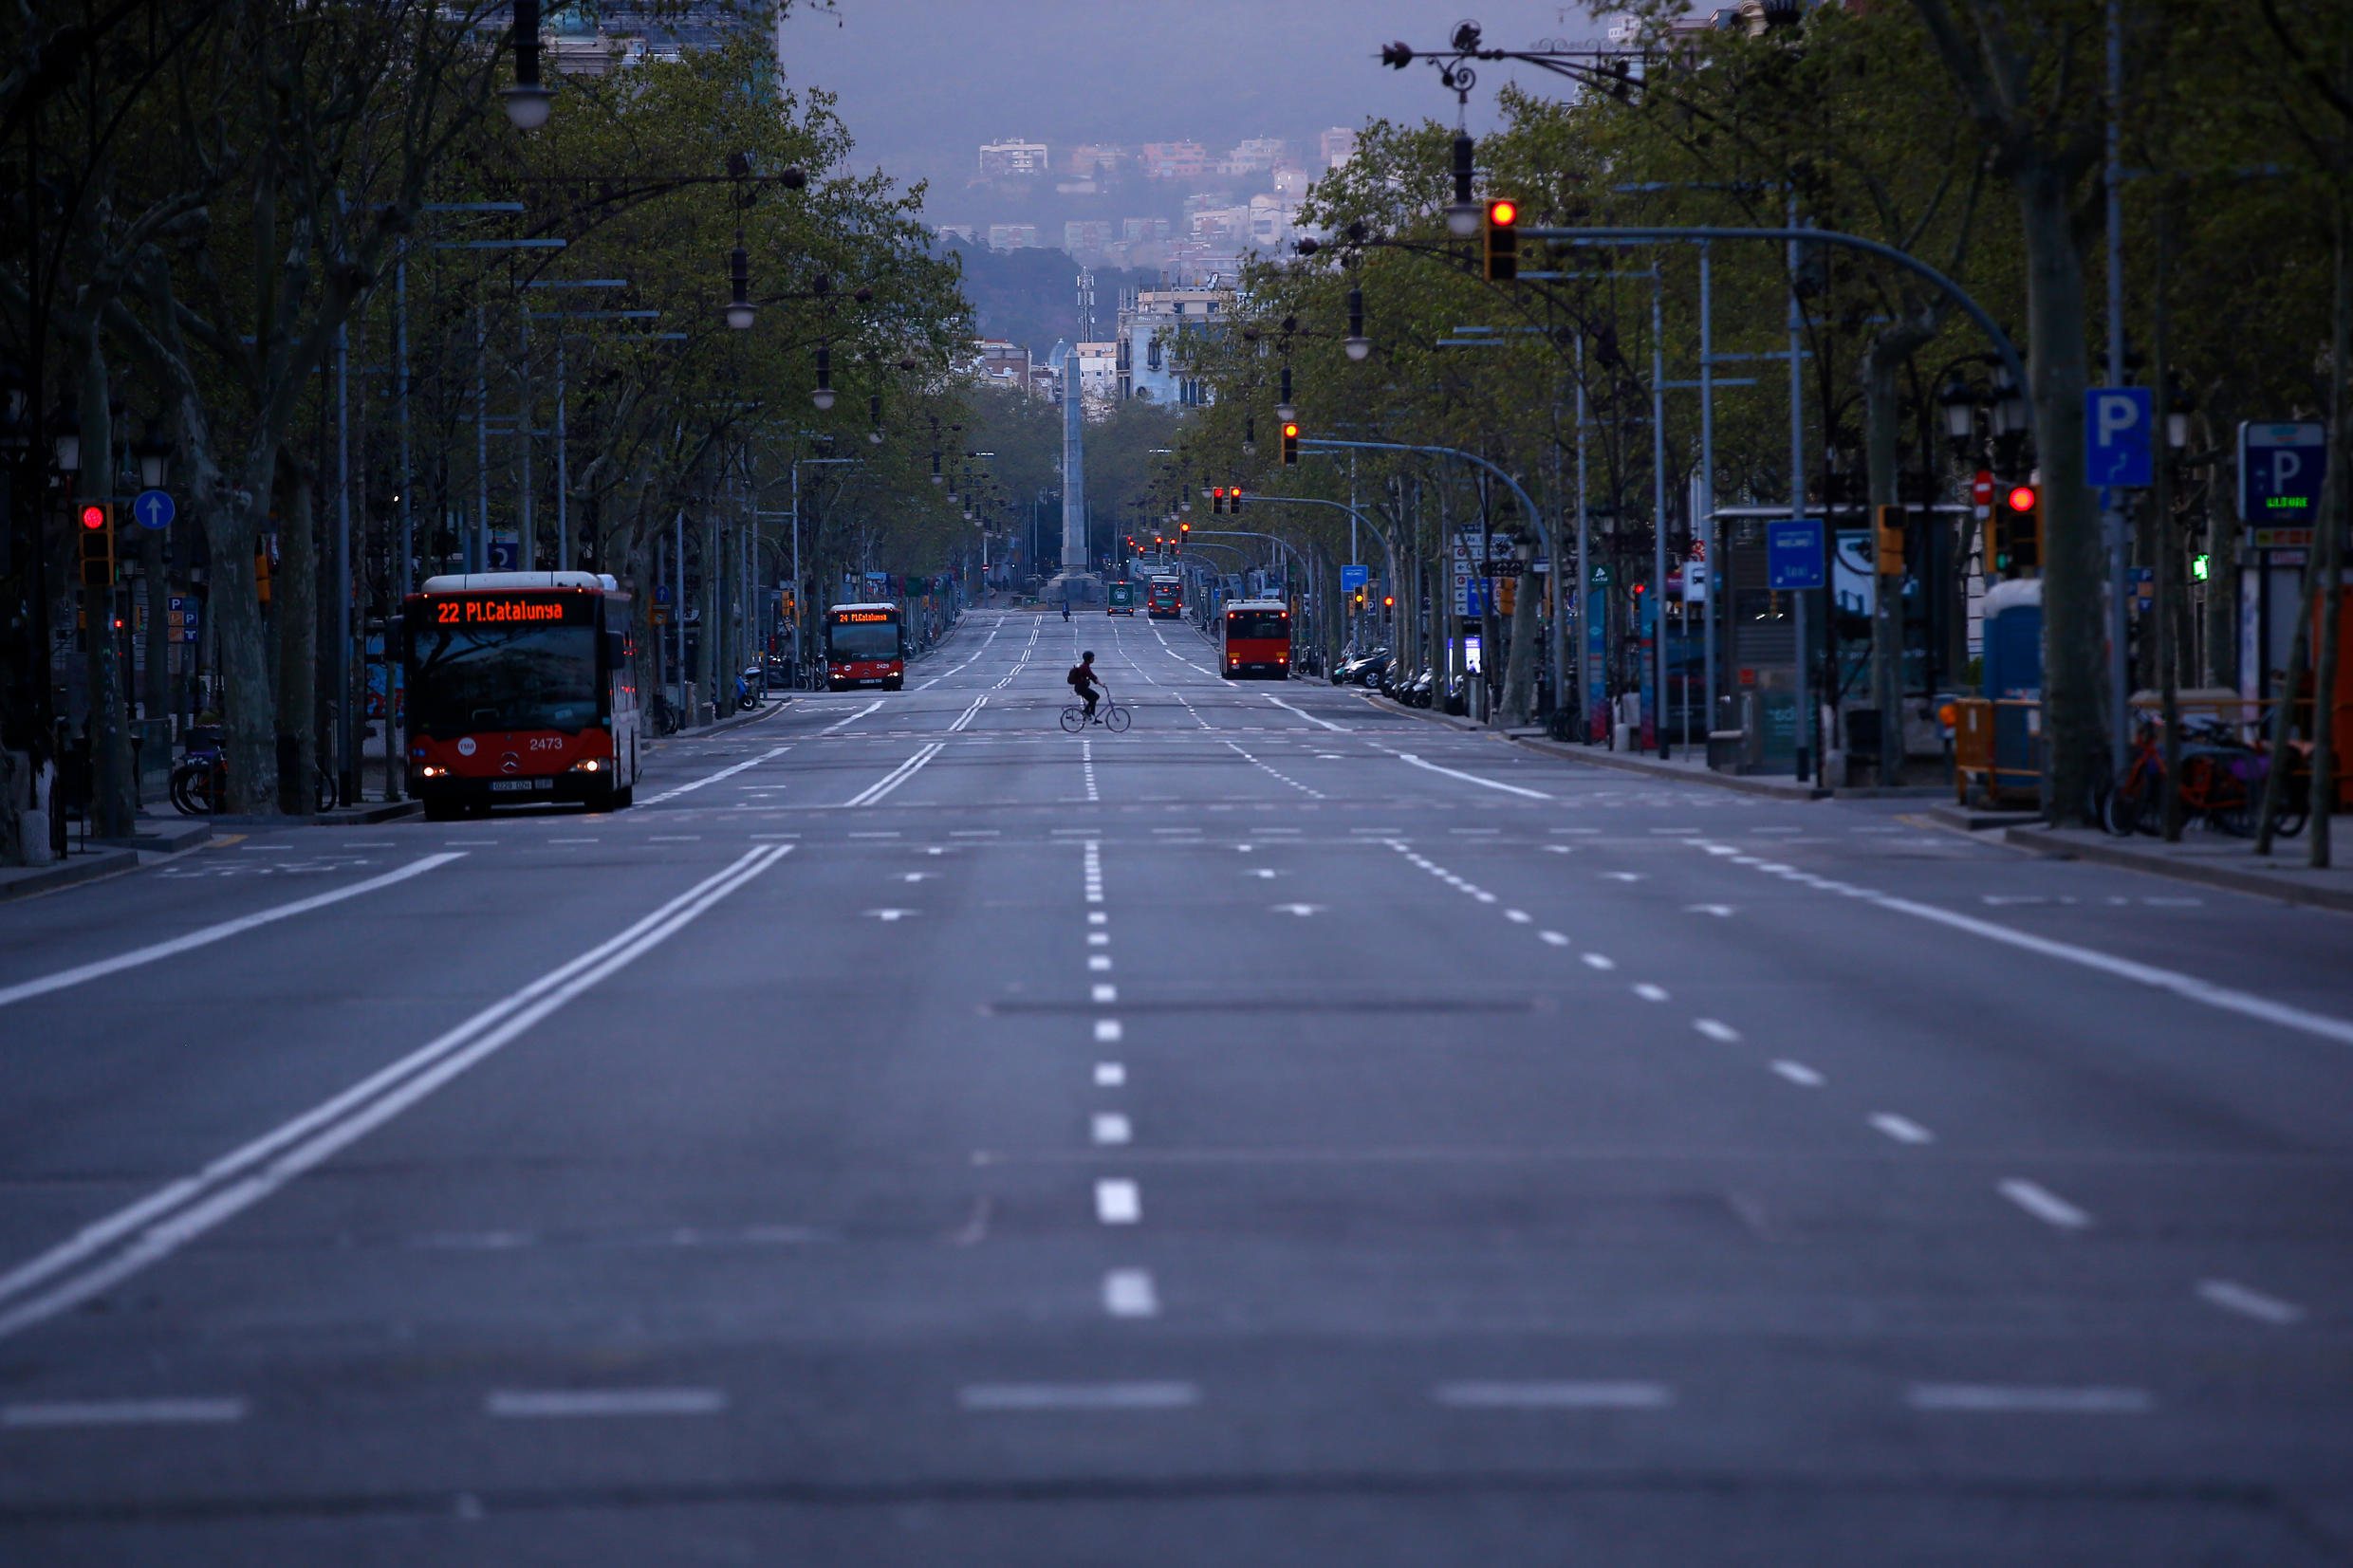 The shutdown in Spain has emptied the streets of the main cities, such as Barcelona